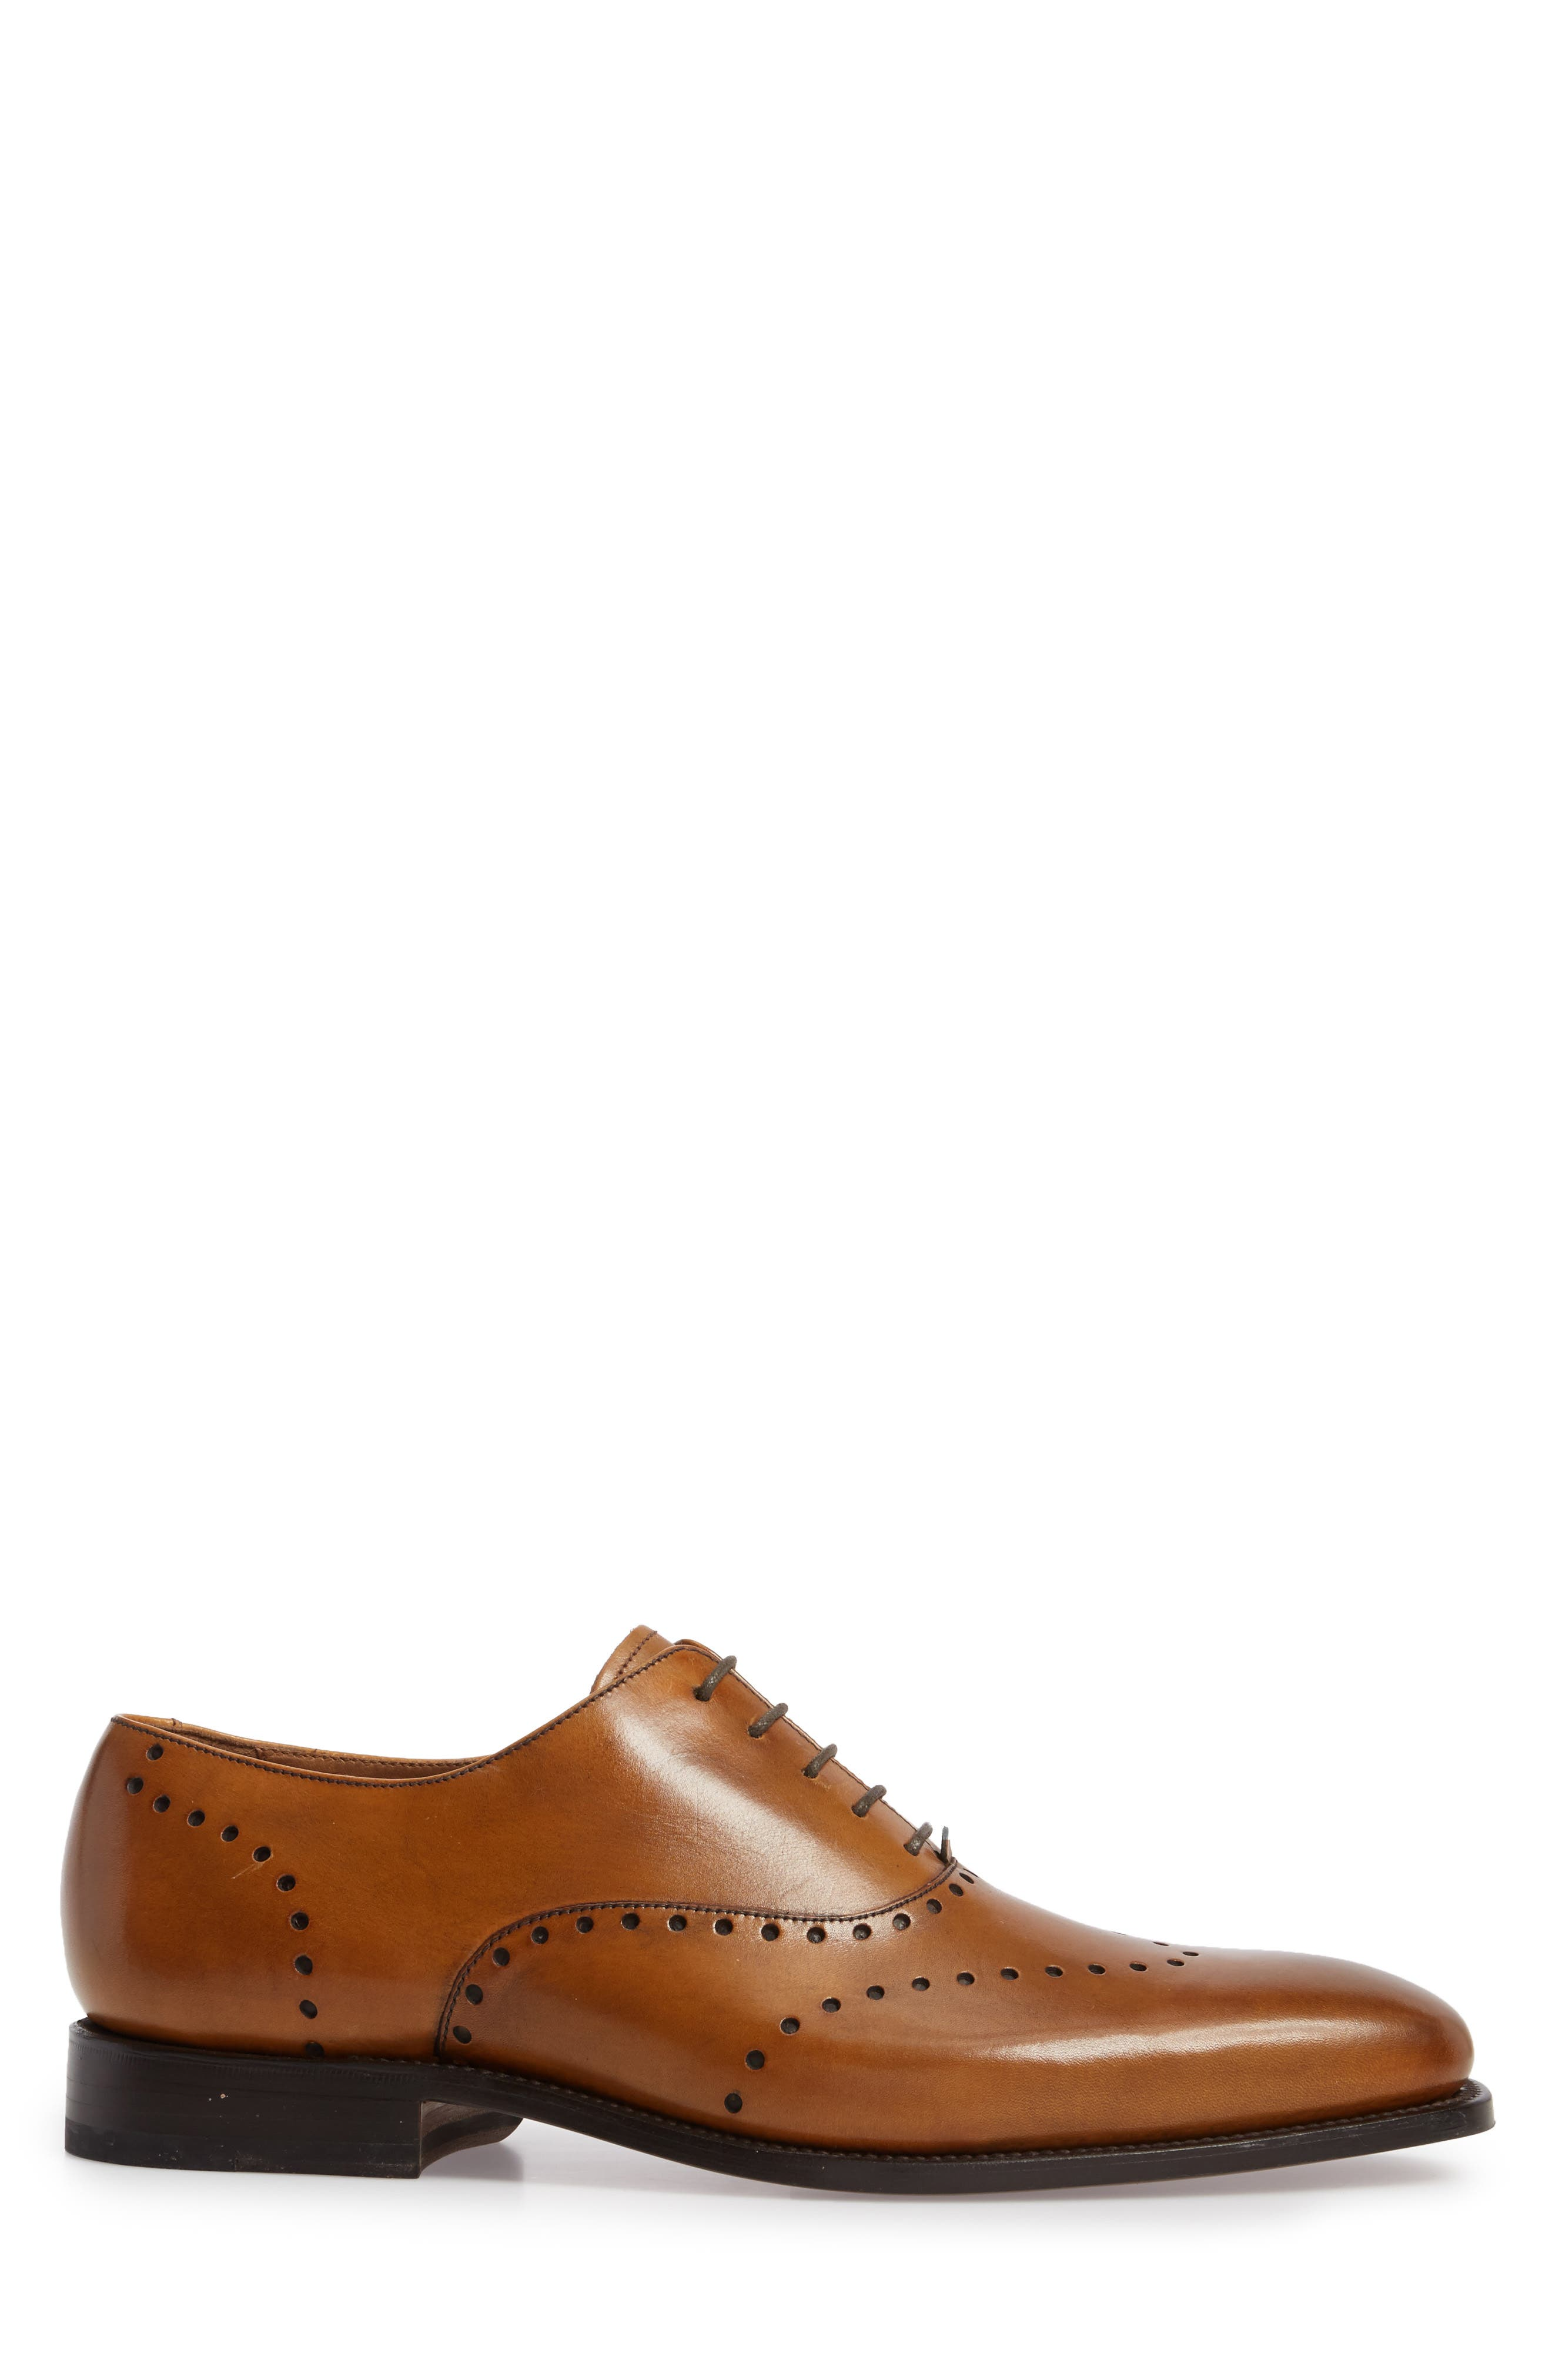 Belvedere Wingtip,                             Alternate thumbnail 3, color,                             OAK